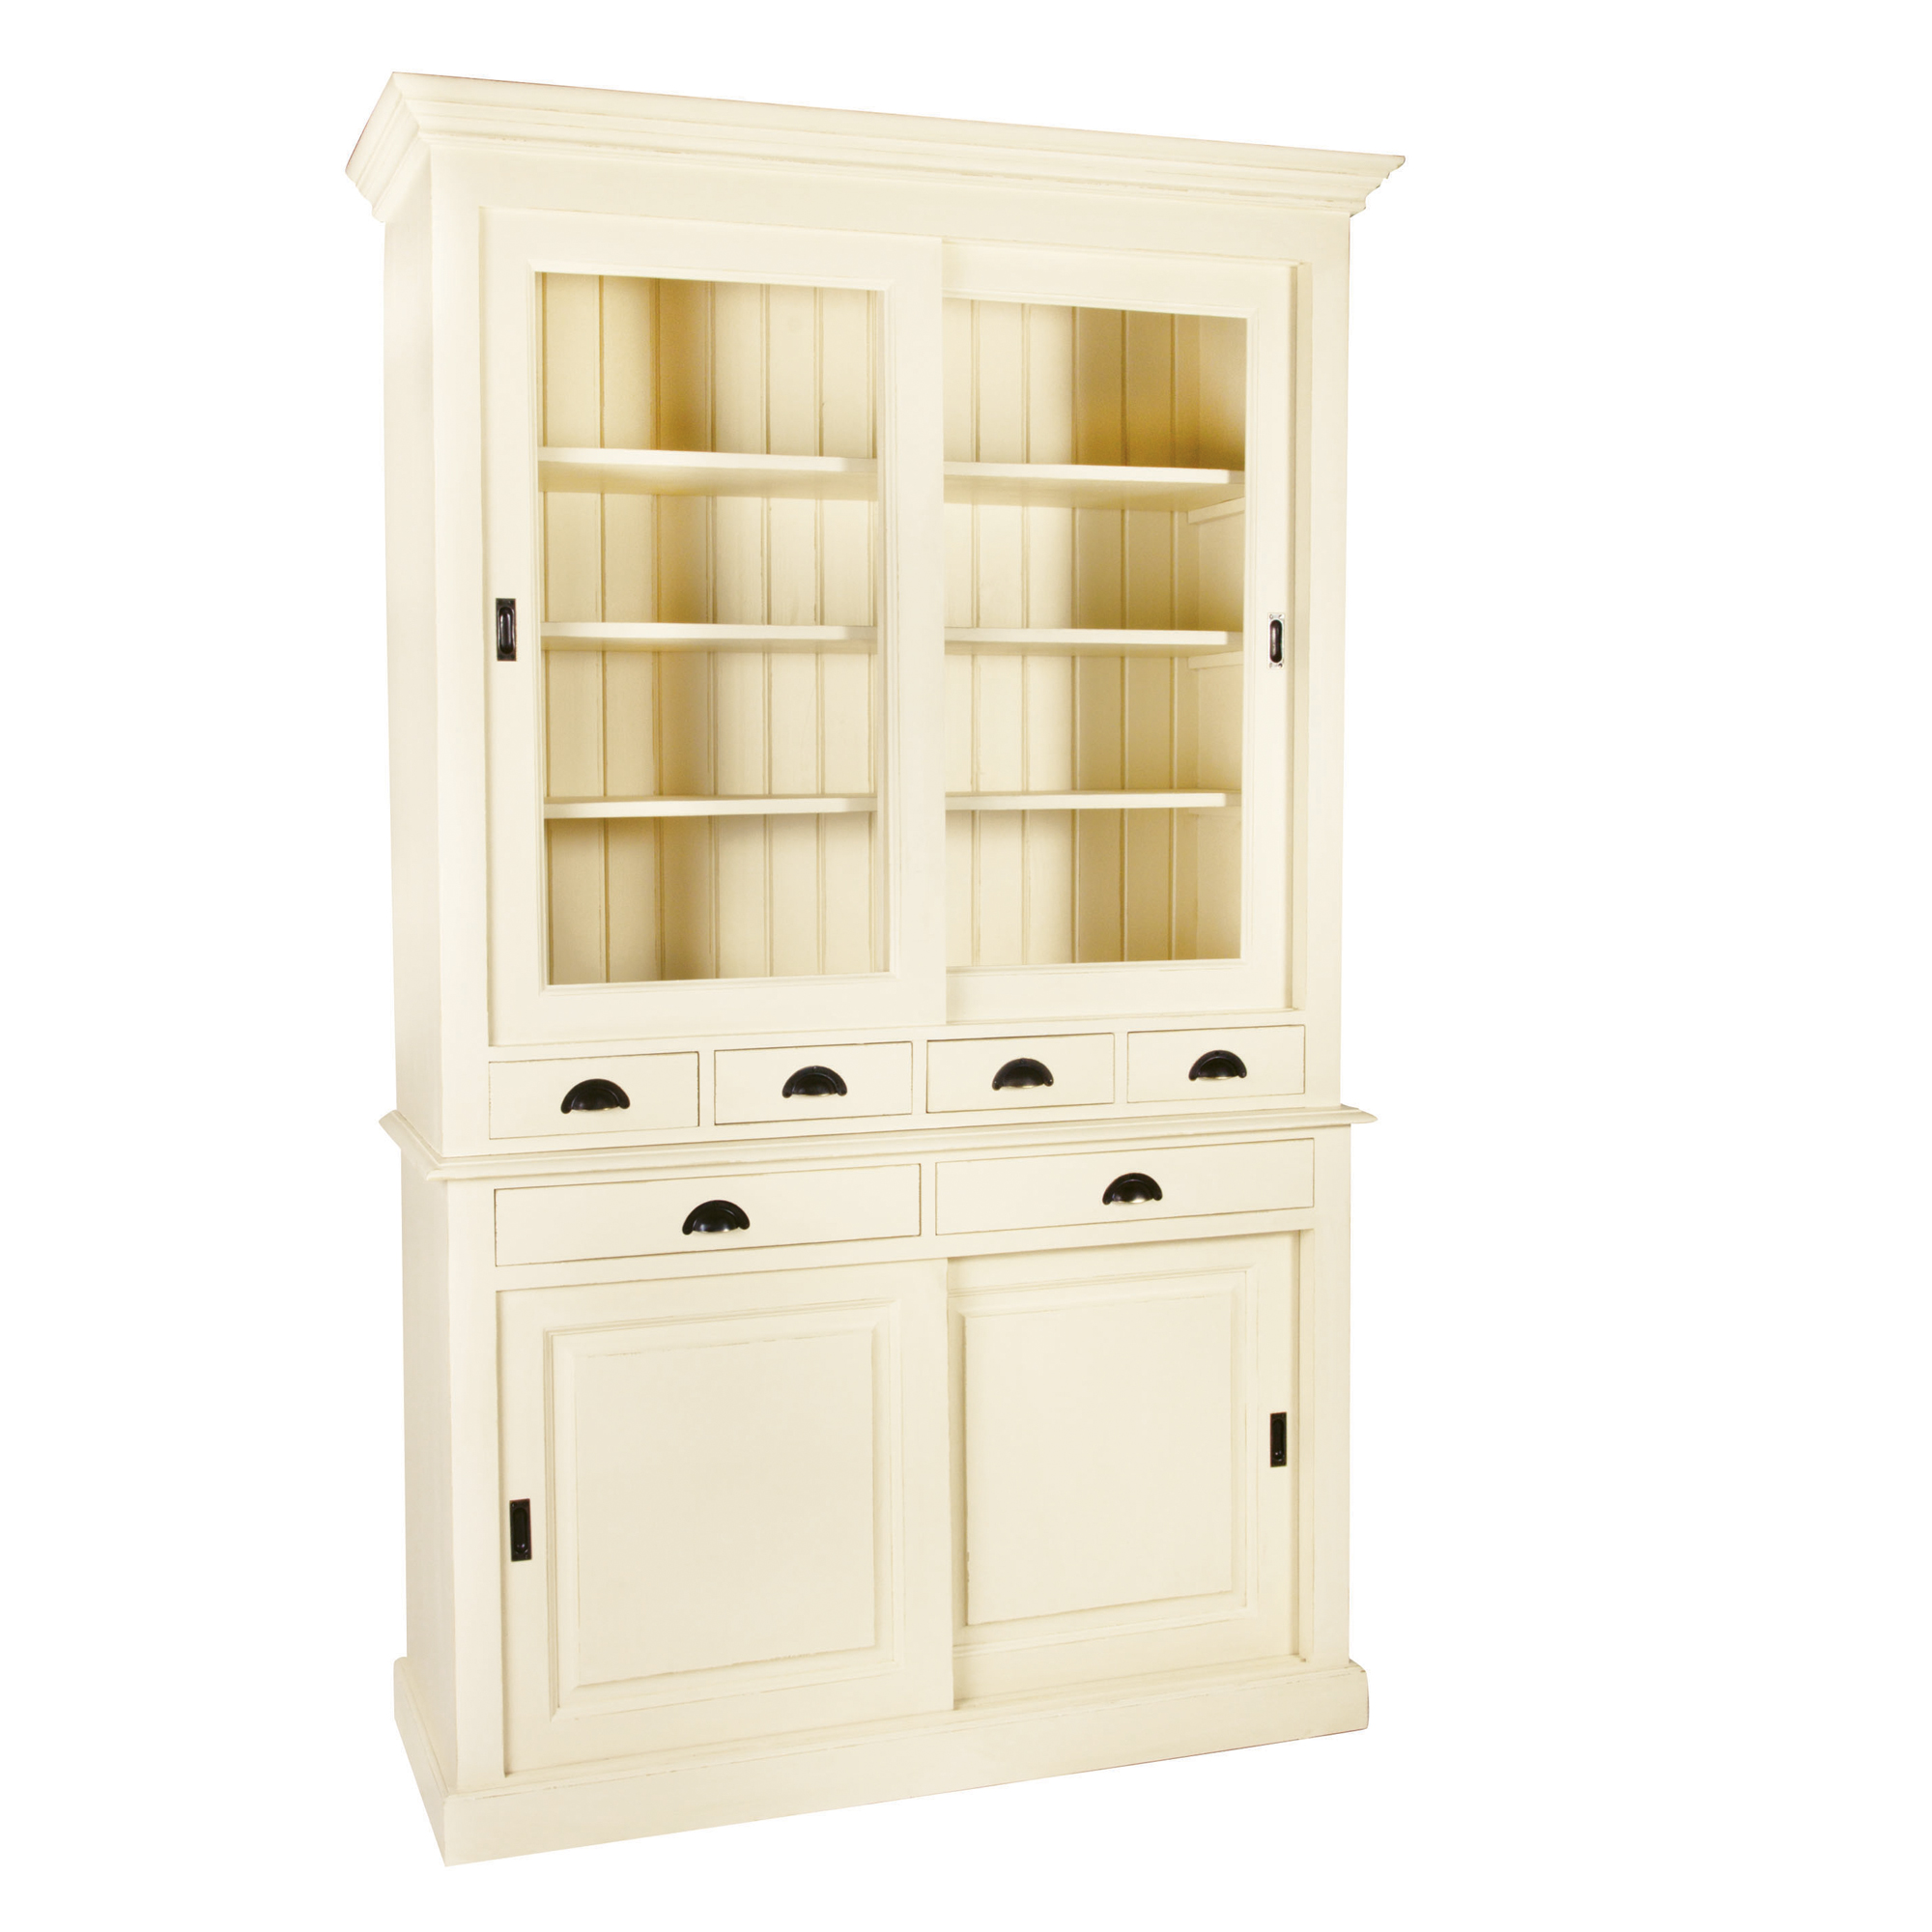 French Sliding Glazed Door Dresser